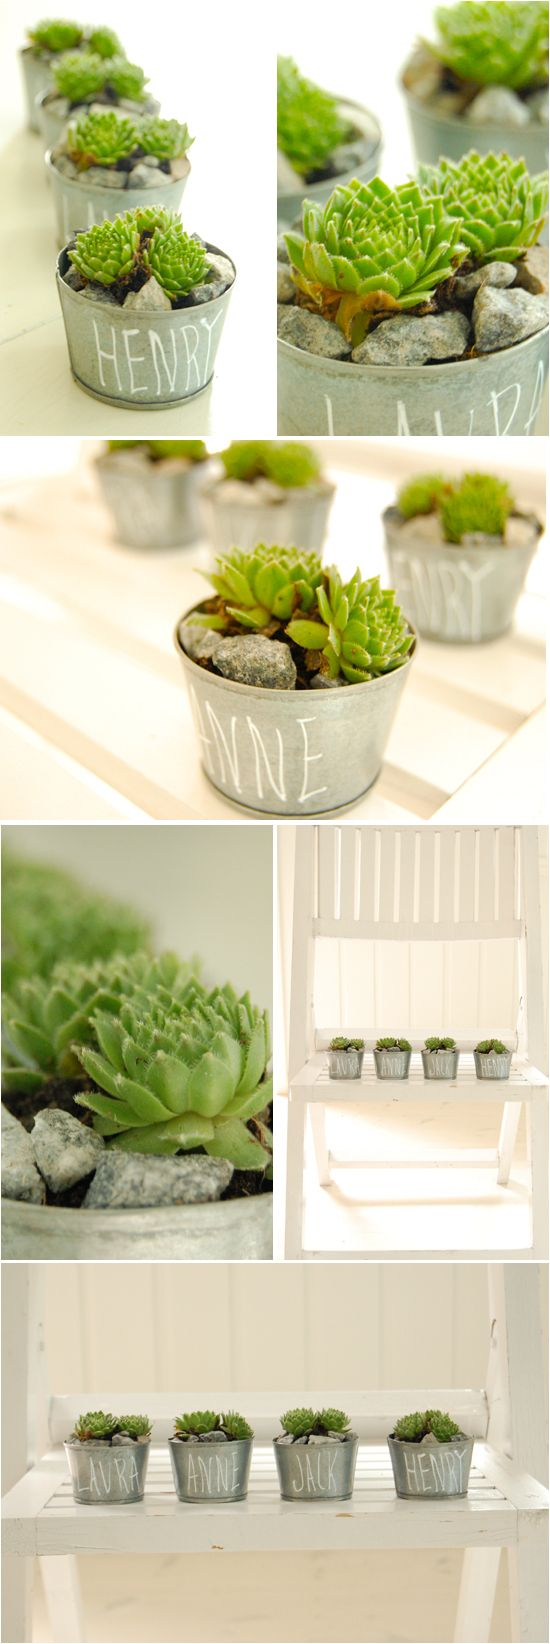 DIY Succulent Favors via Project Wedding